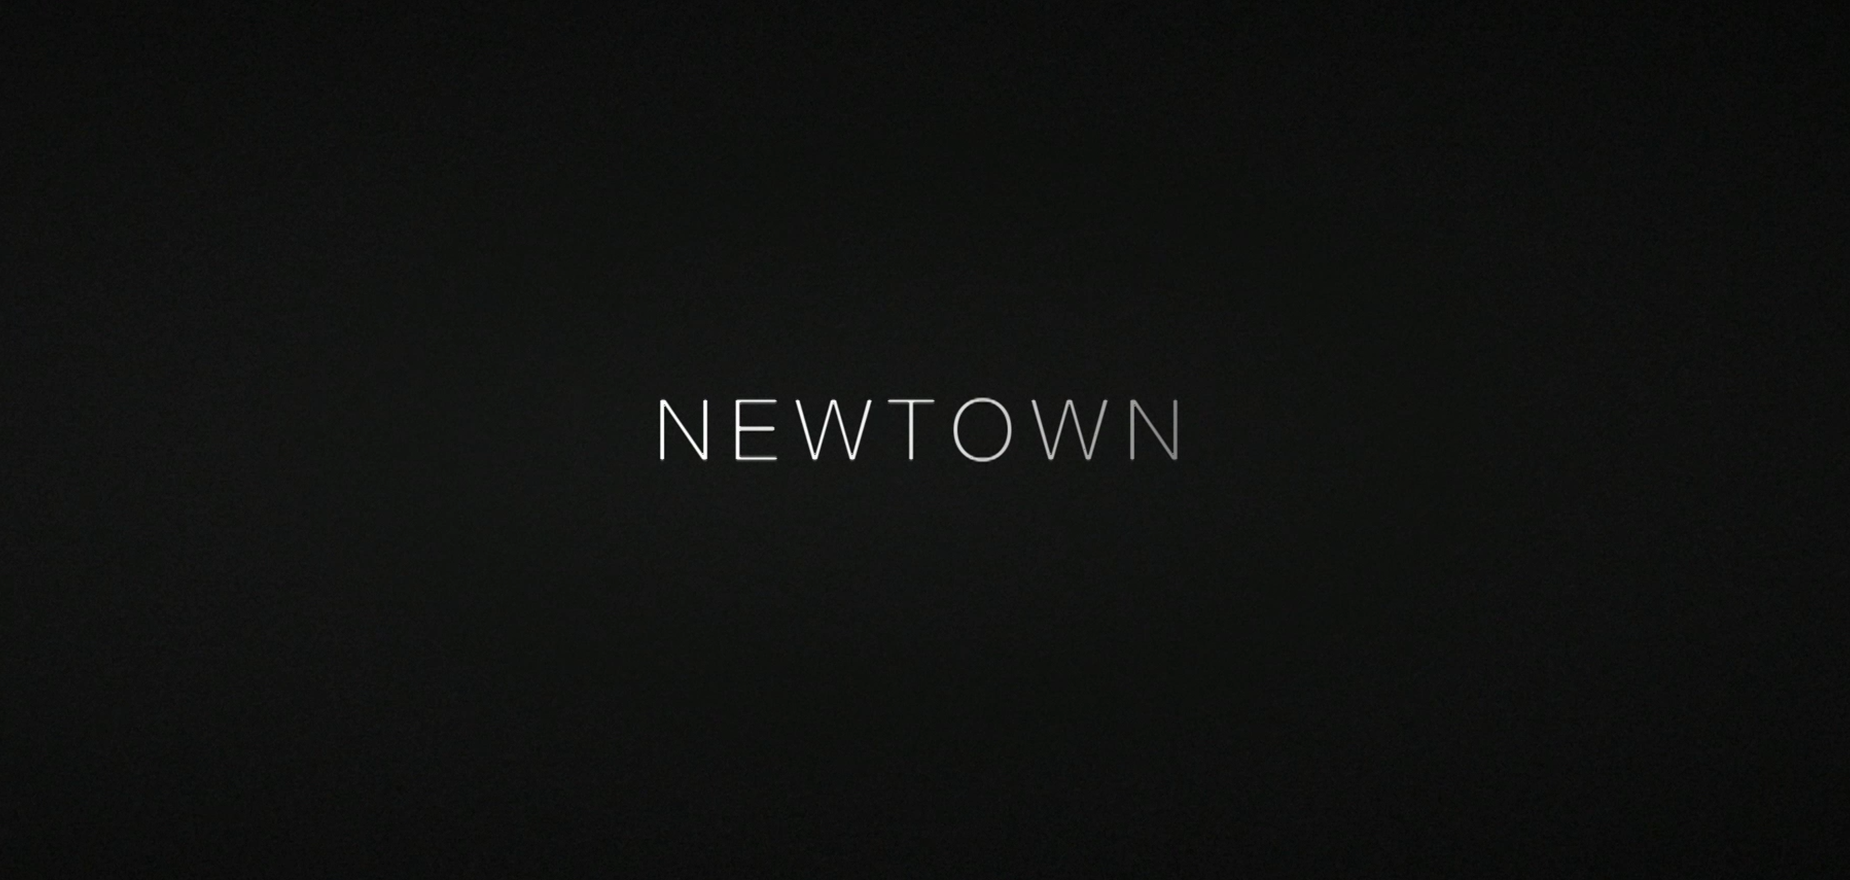 Independent Lens: Newtown - Mile 22 LLC, Independent Television Service (ITVS), in association with KA Snyder Productions, Cuomo Cole Productions